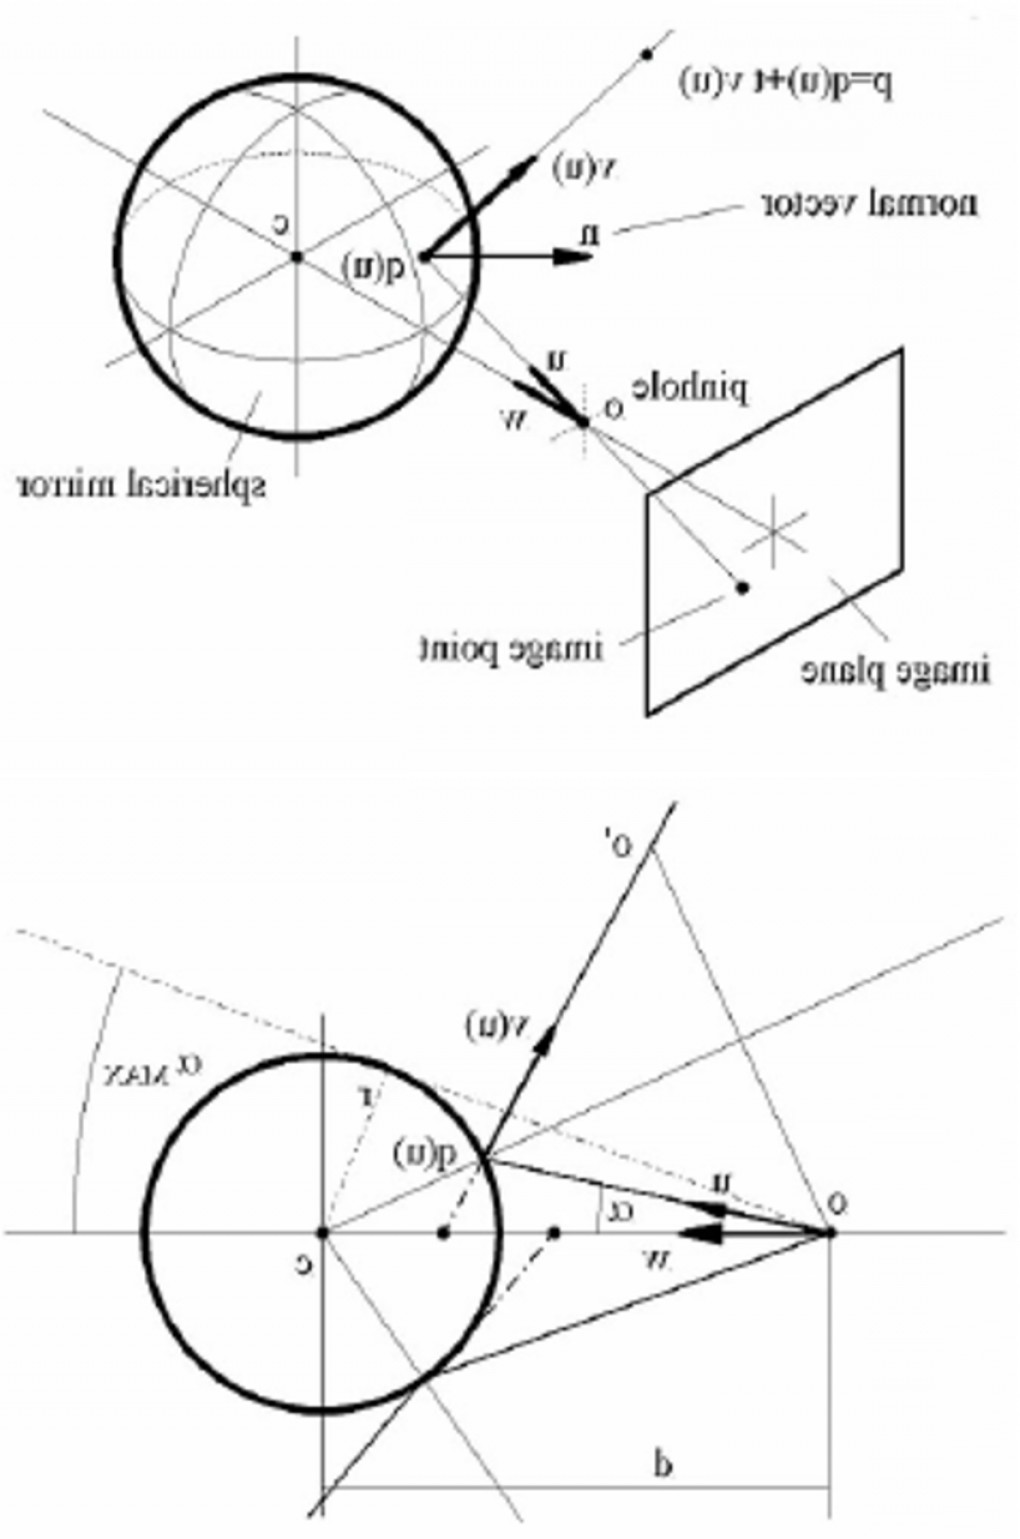 A Normal Line Of Vector: The Geometry Of A Reflected Ray The Incident Ray Normal Vector And Reflected Ray Arefig